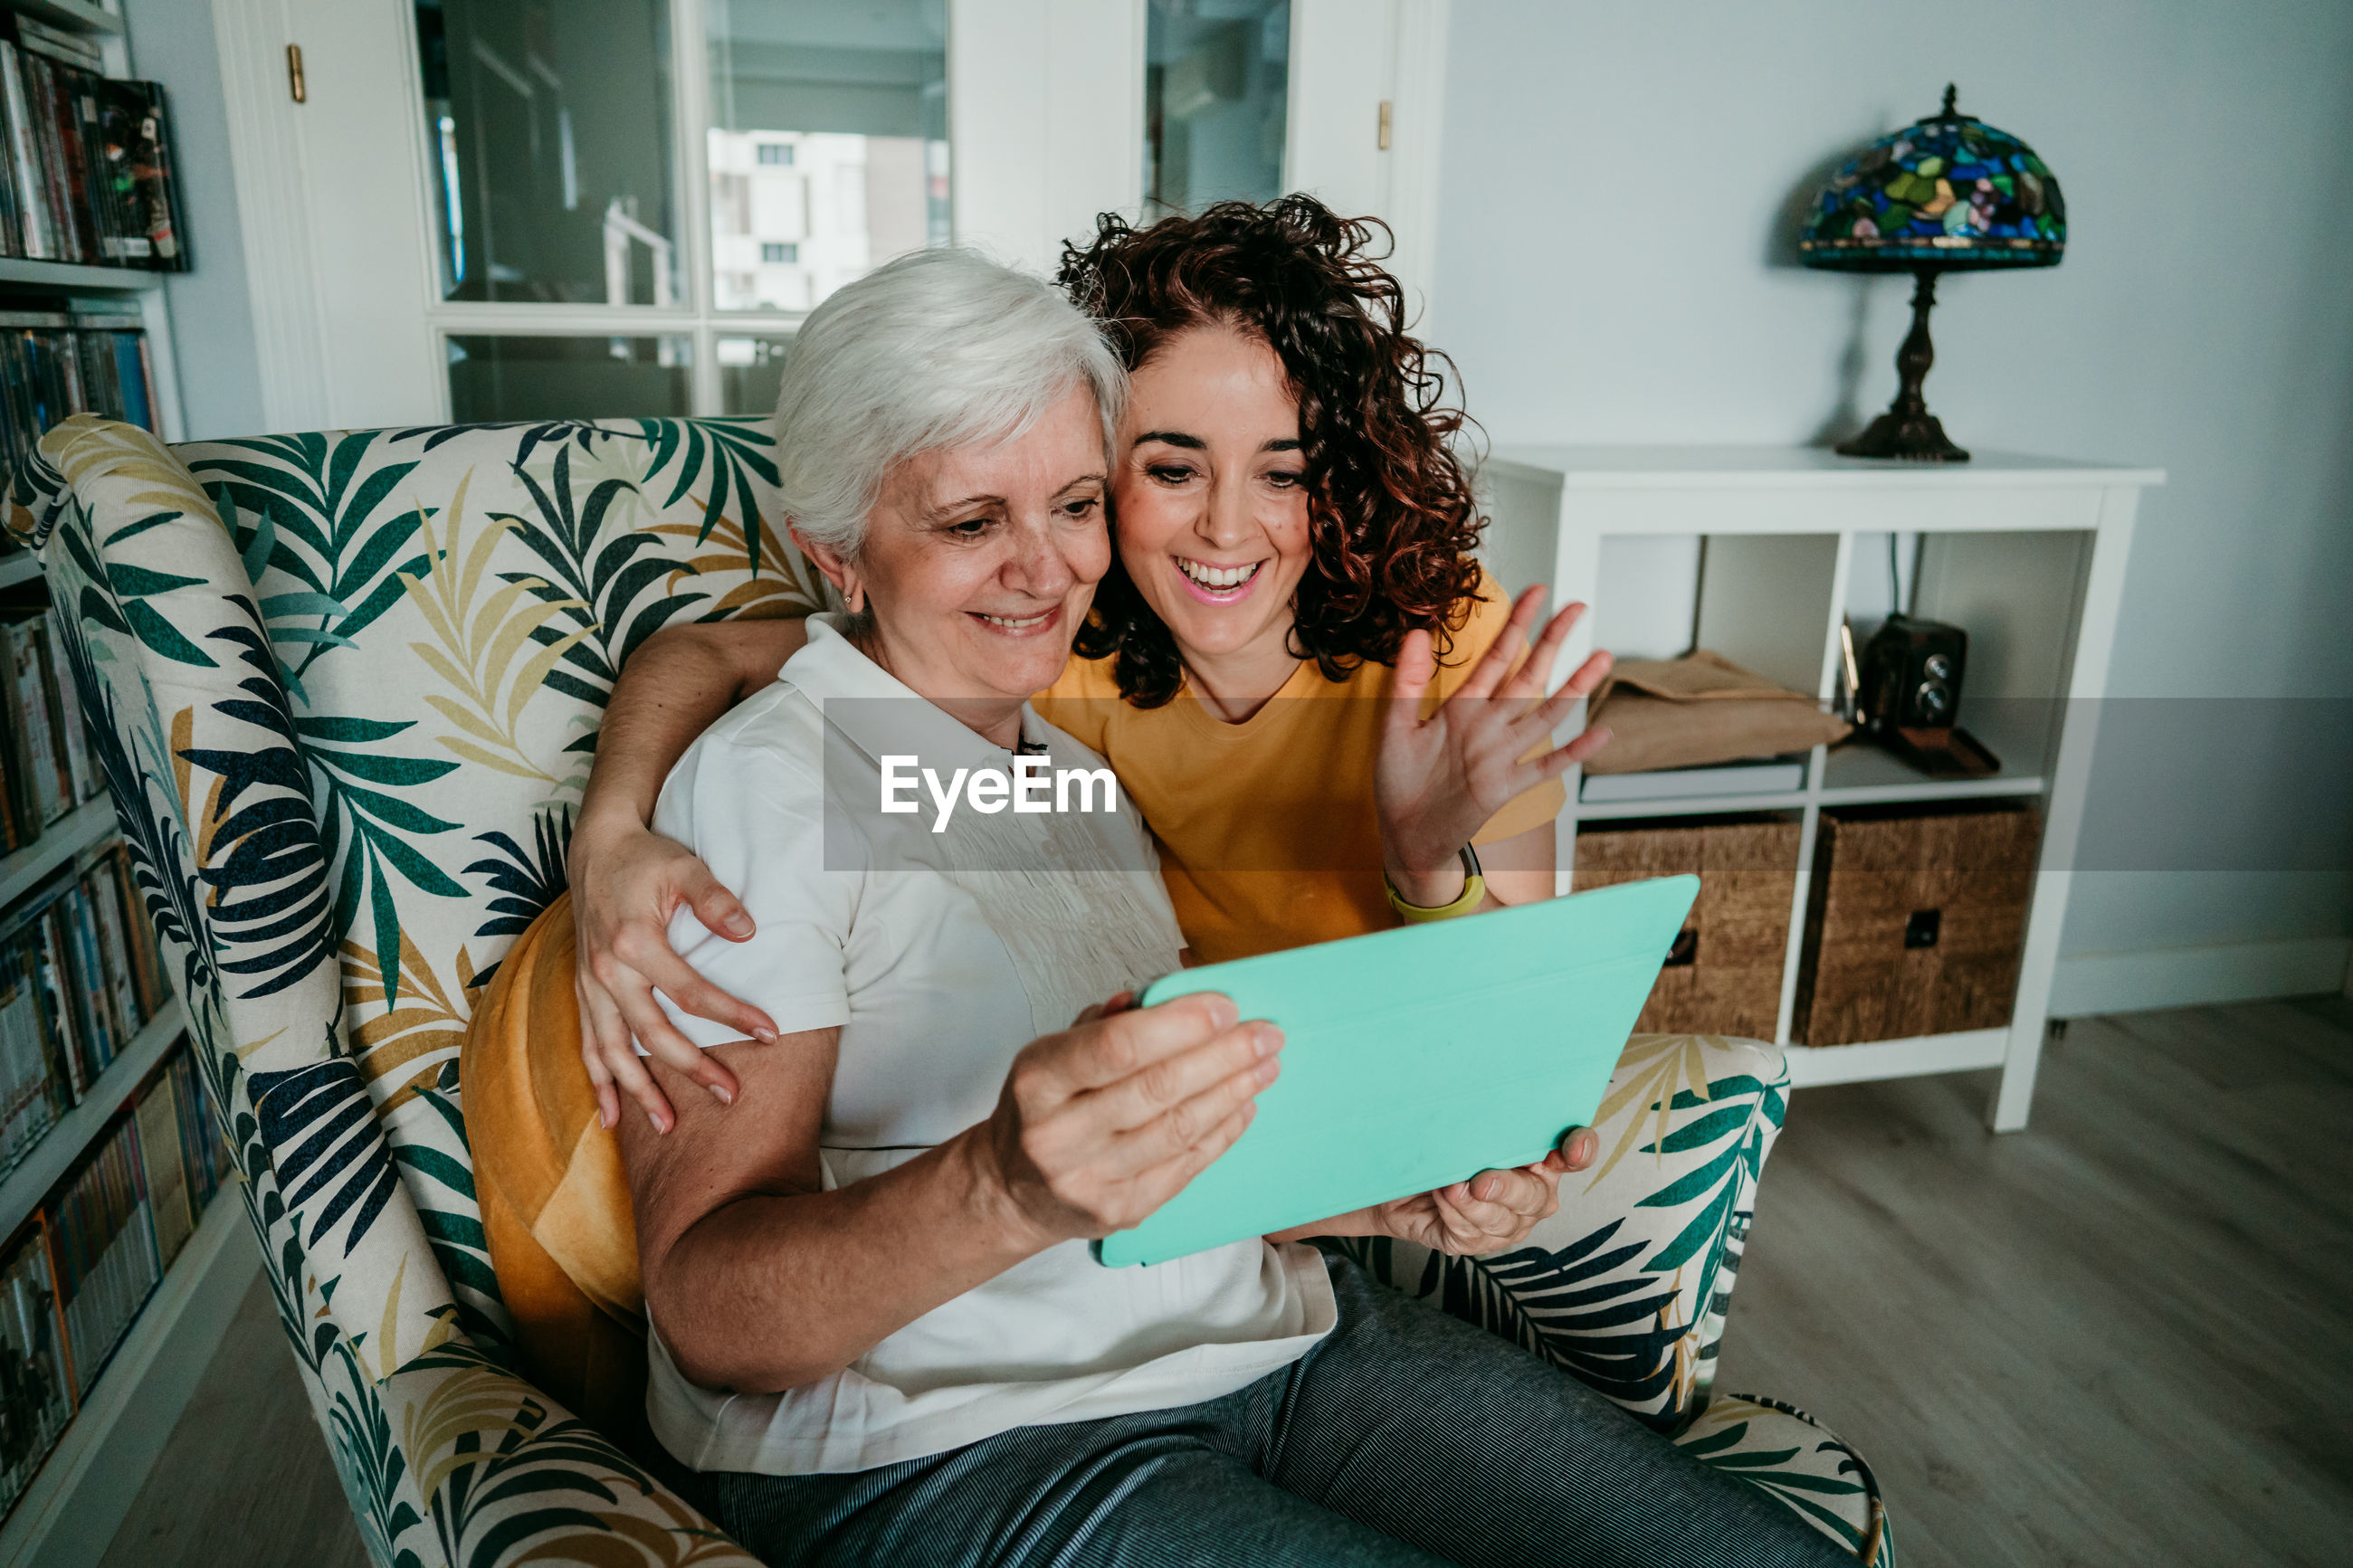 Smiling woman and daughter on video call over digital tablet